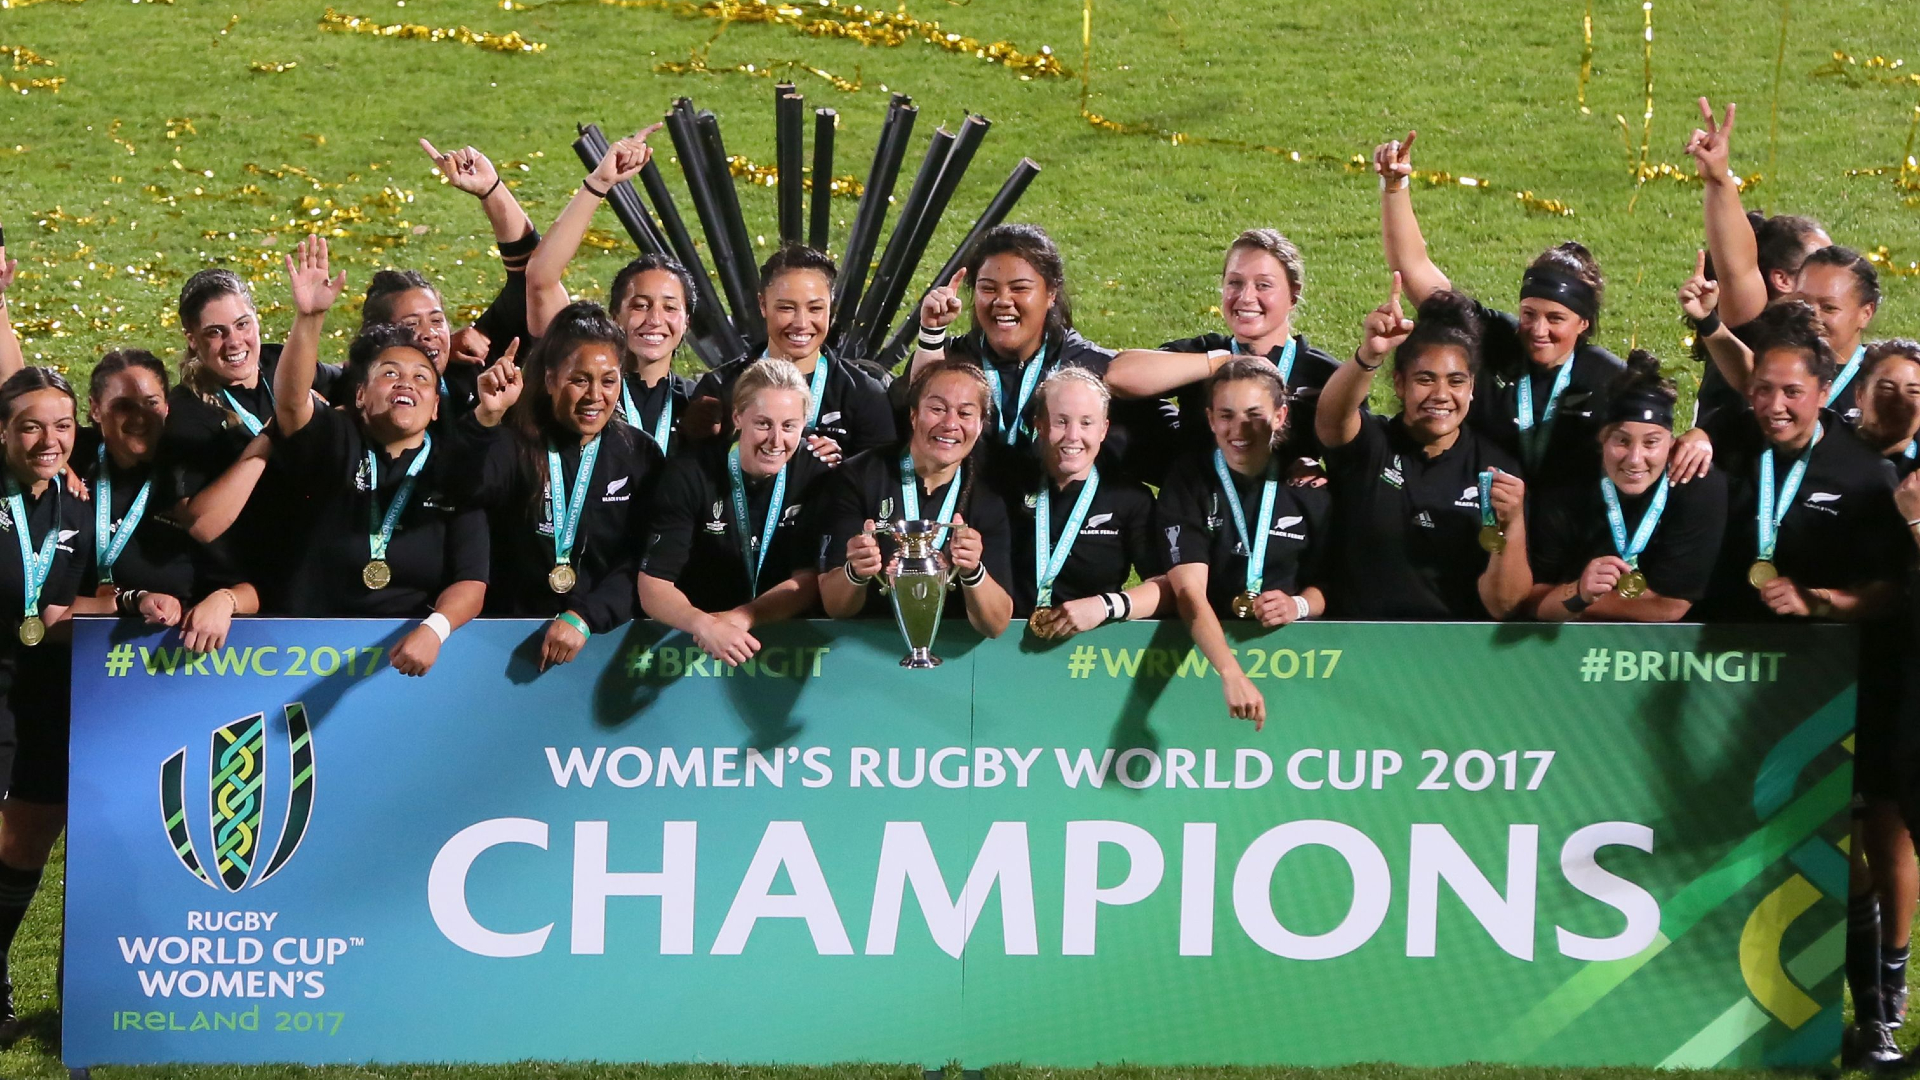 Rugby World Cup set to be postponed, dealing blow to women's elite